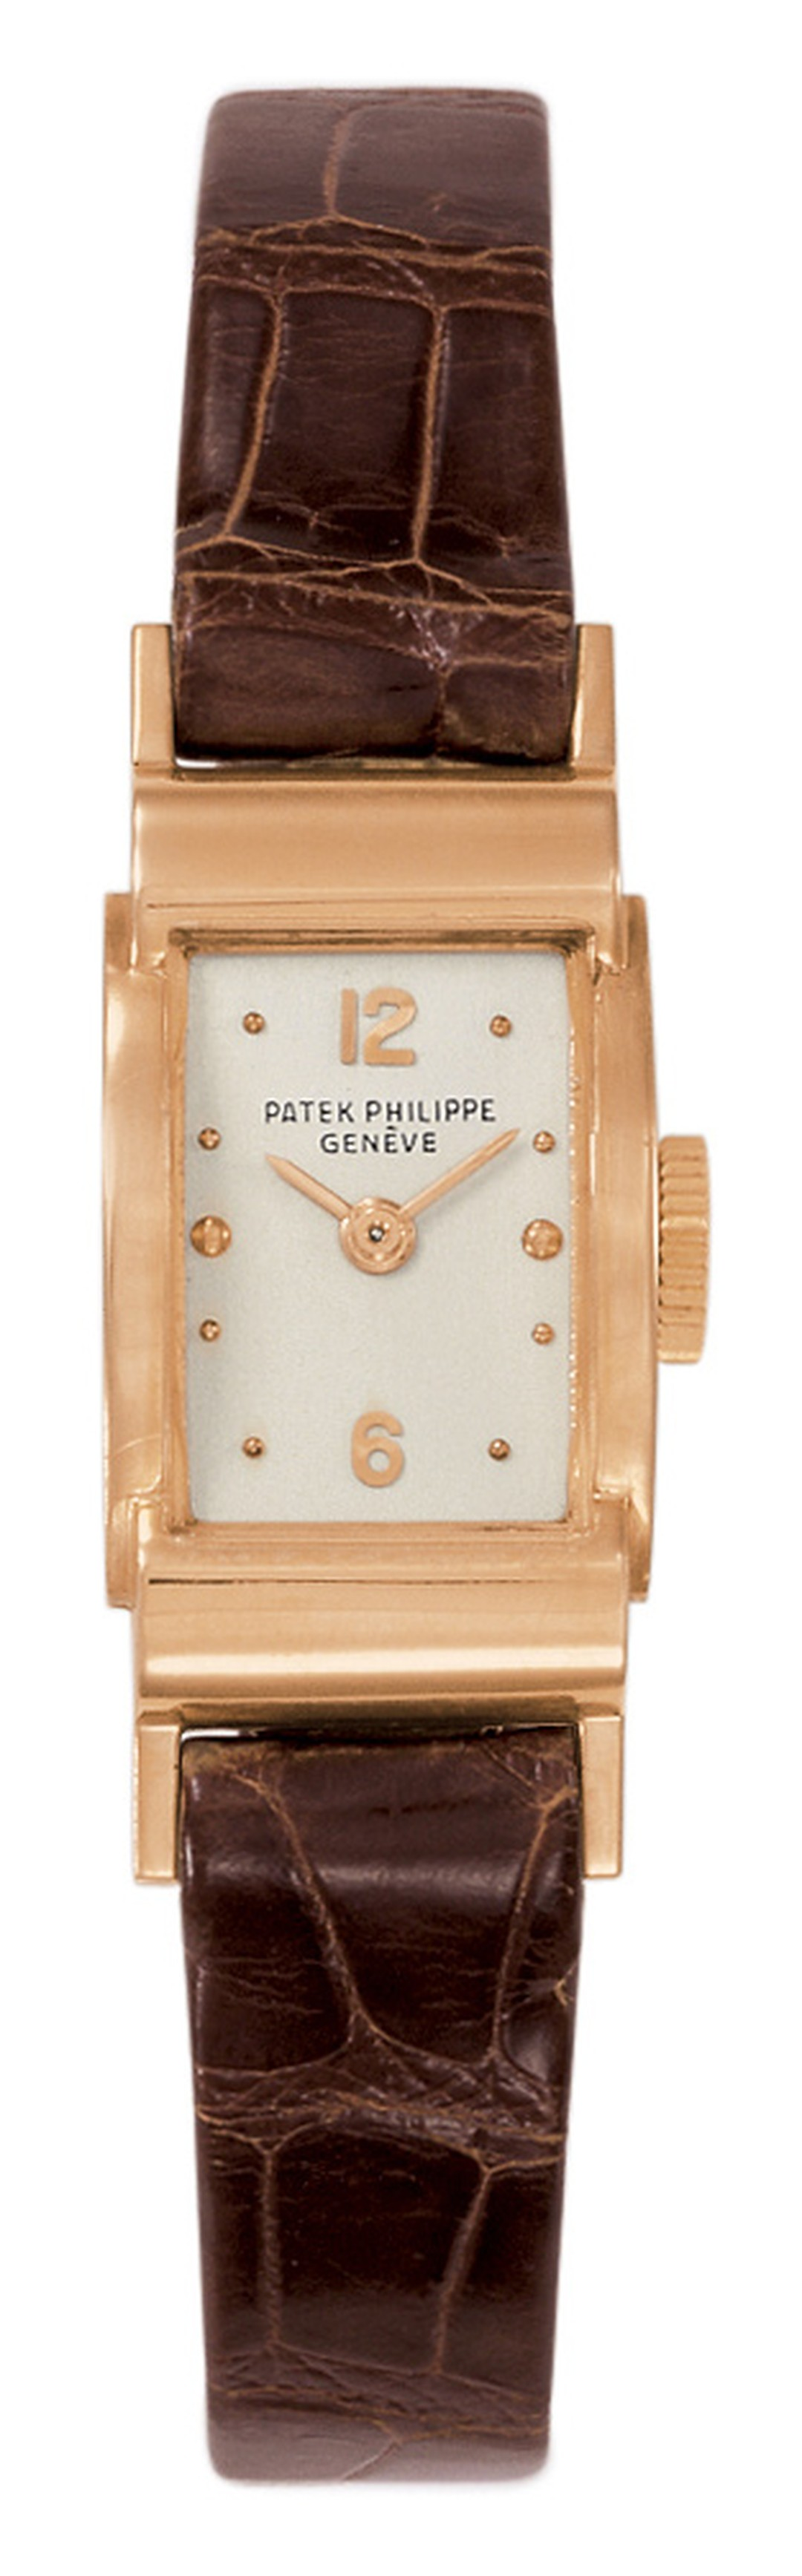 Patek-Philippe-P0530_a_100_collection-1940-60.jpg